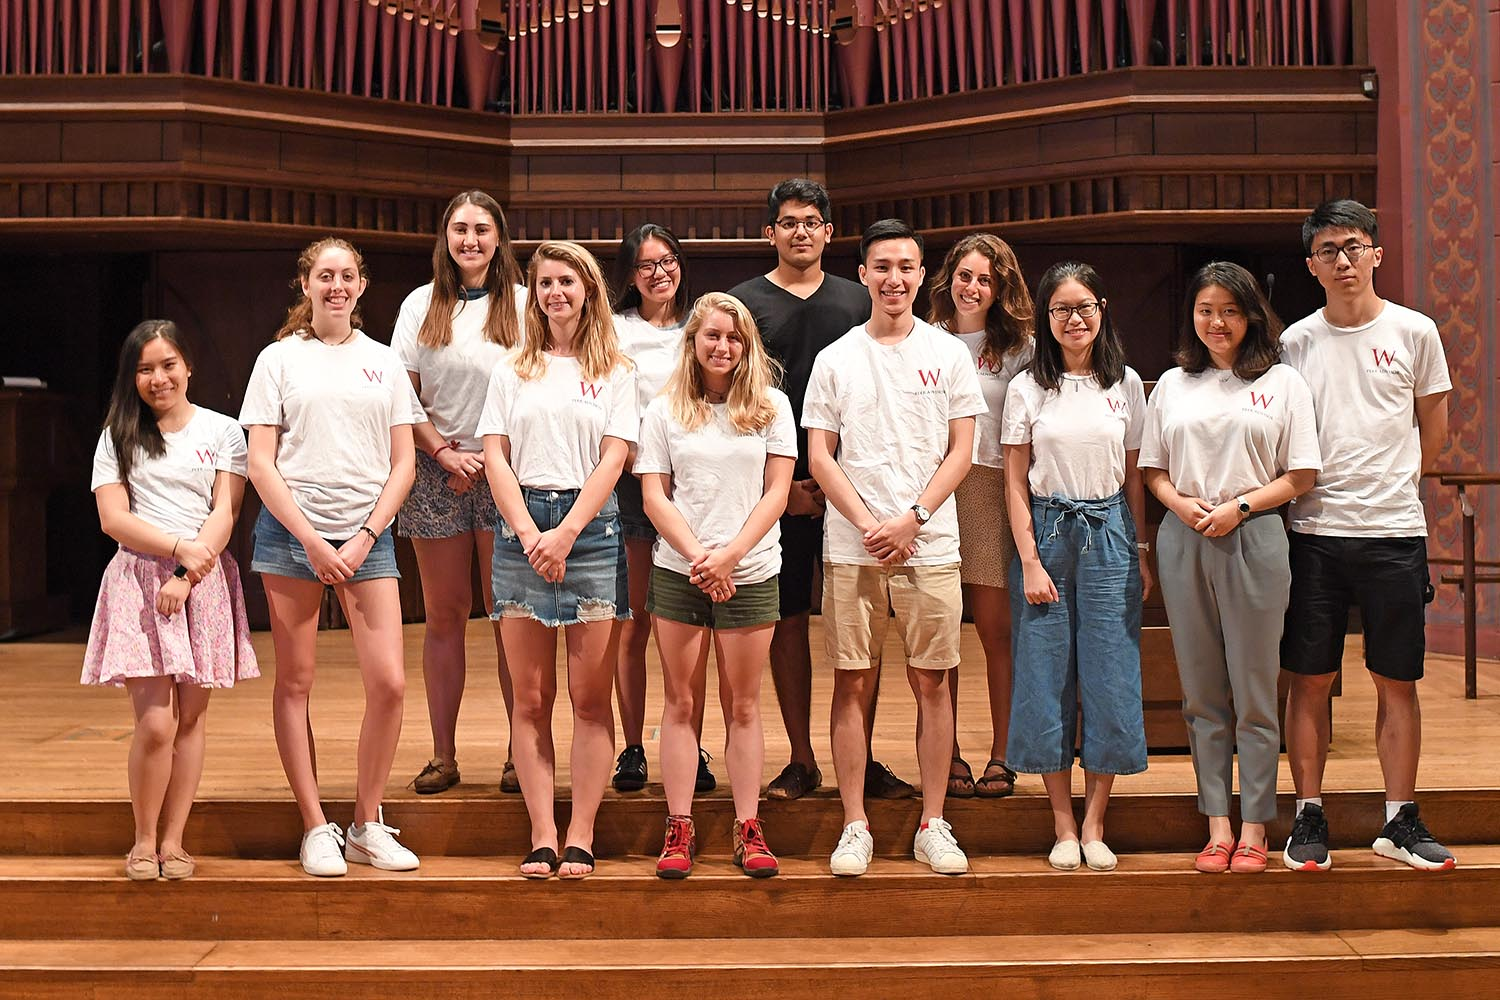 Academic peer advisors, pictured, work with Wesleyan students year-round. They attend week of training in May, a week in August, and an additional three hours of training per month.